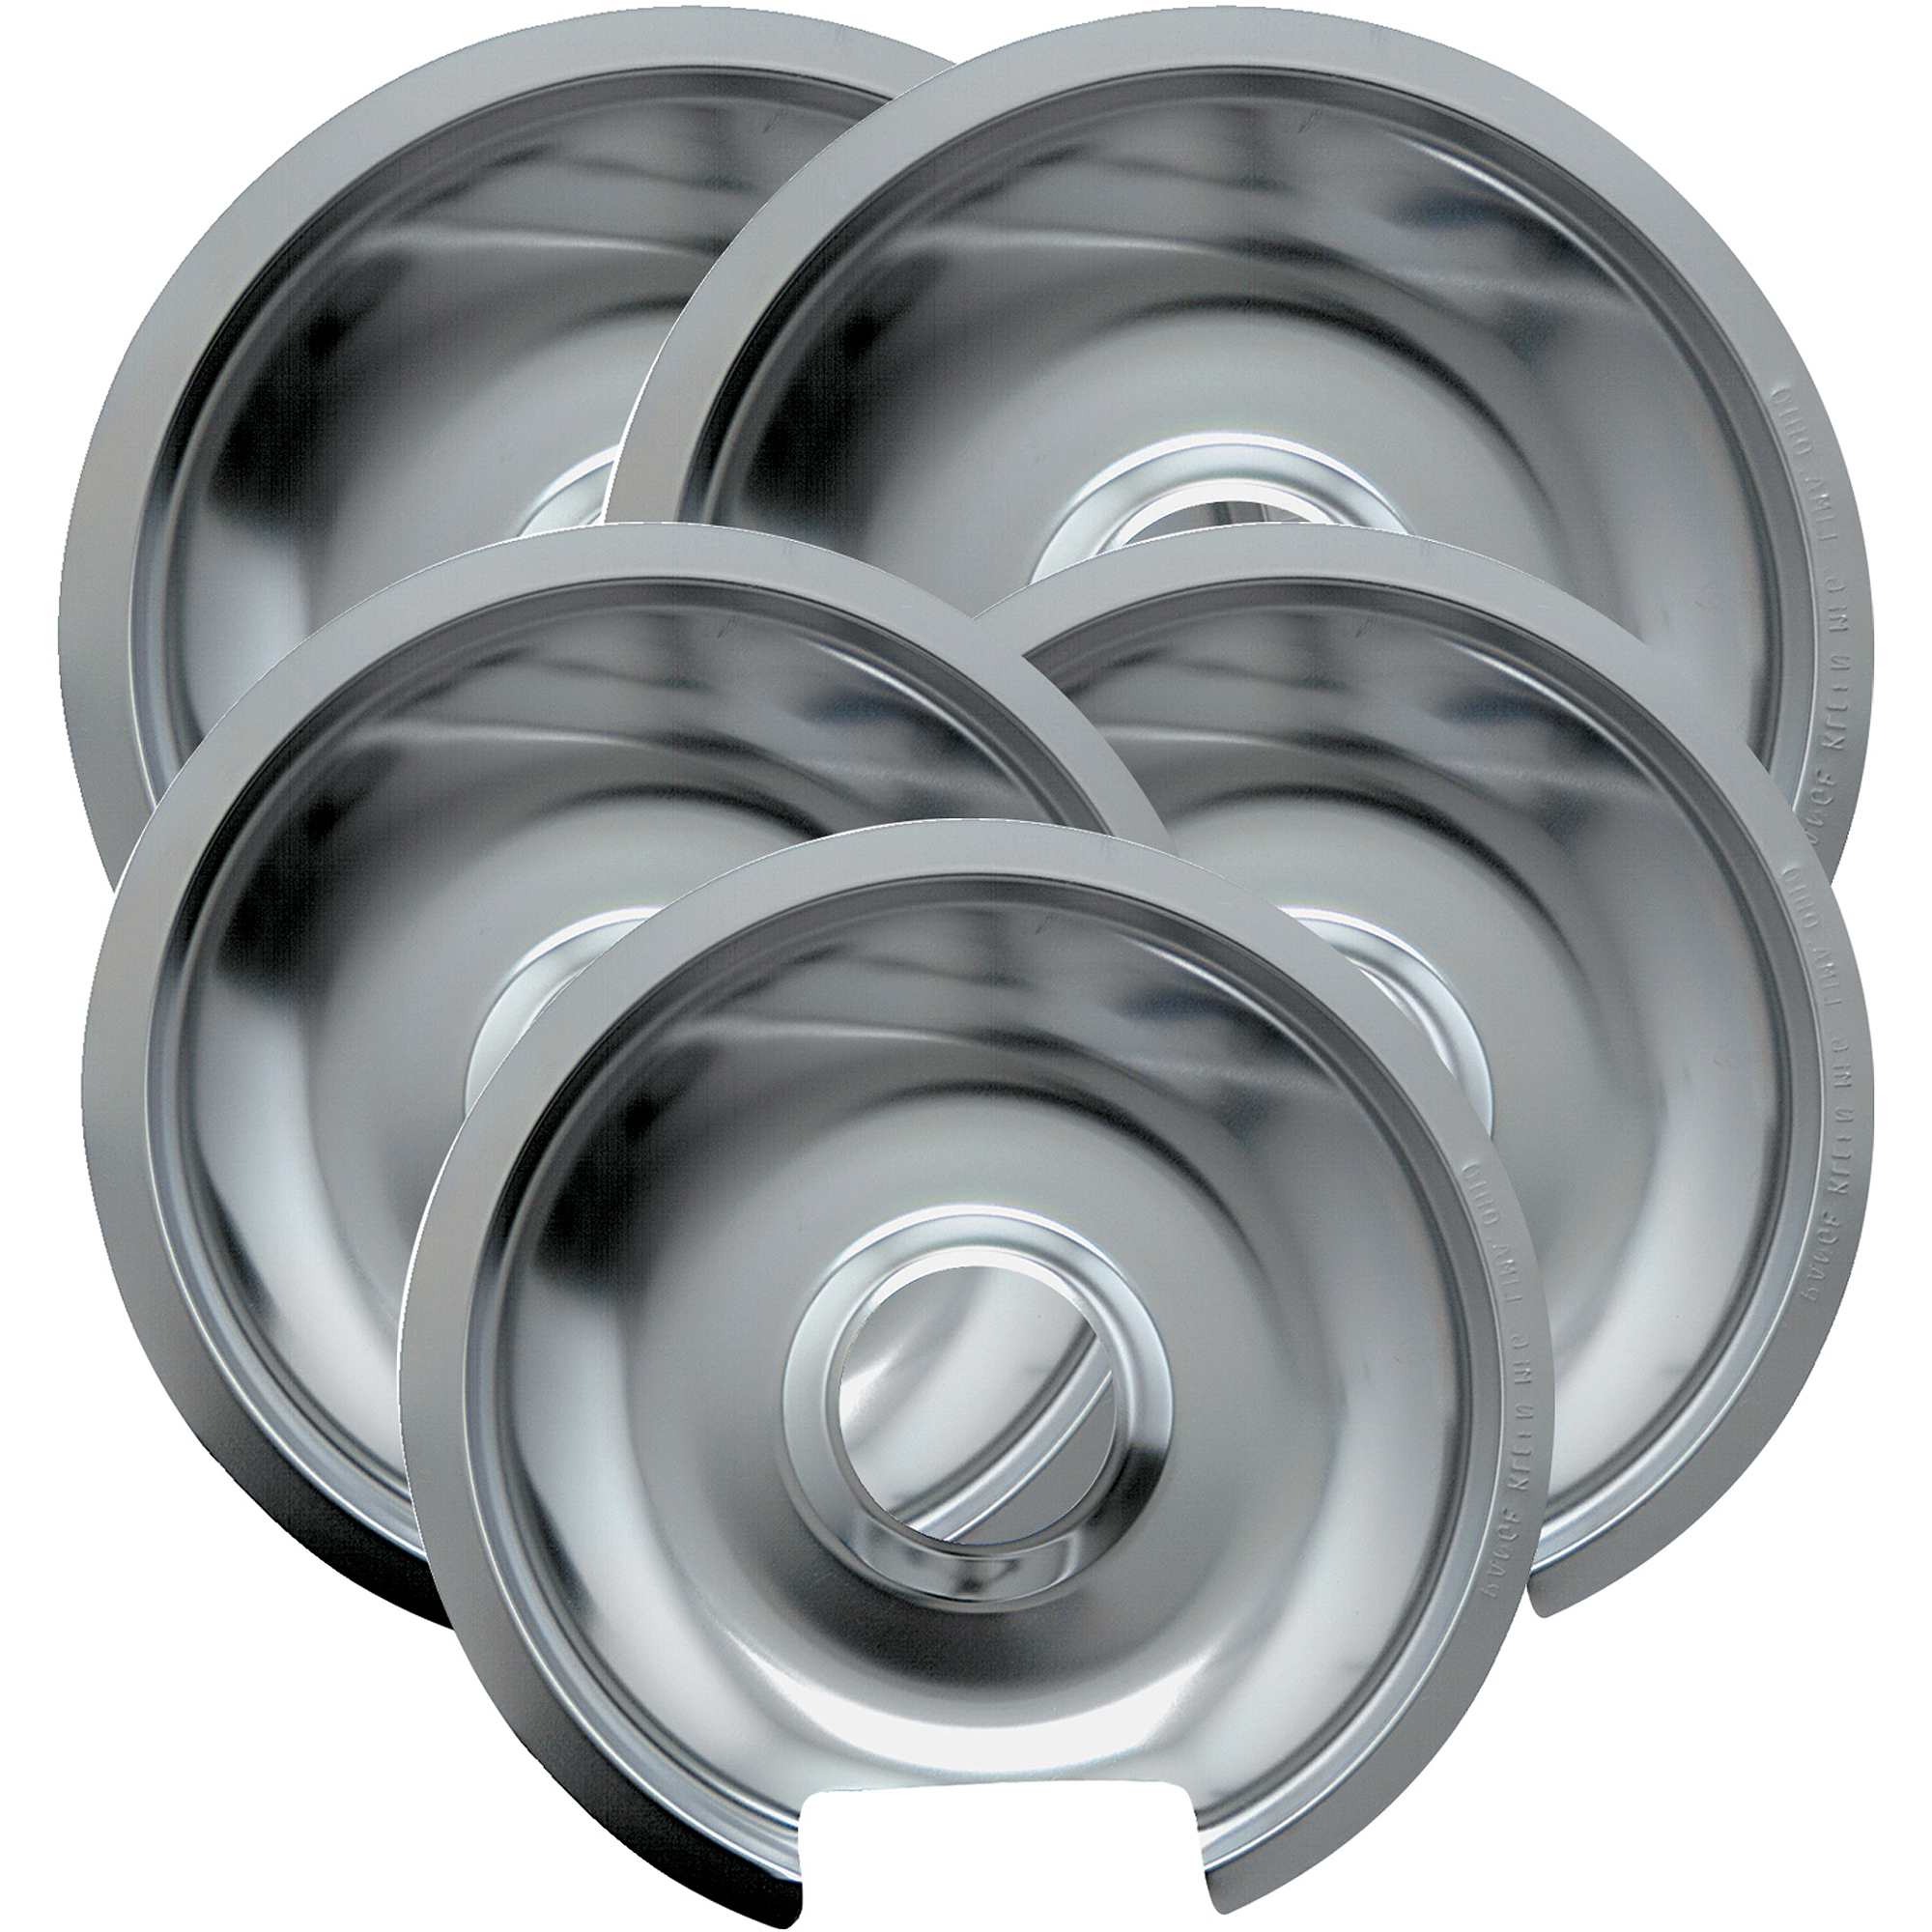 Stainless Steel Electric Range Drip Pans